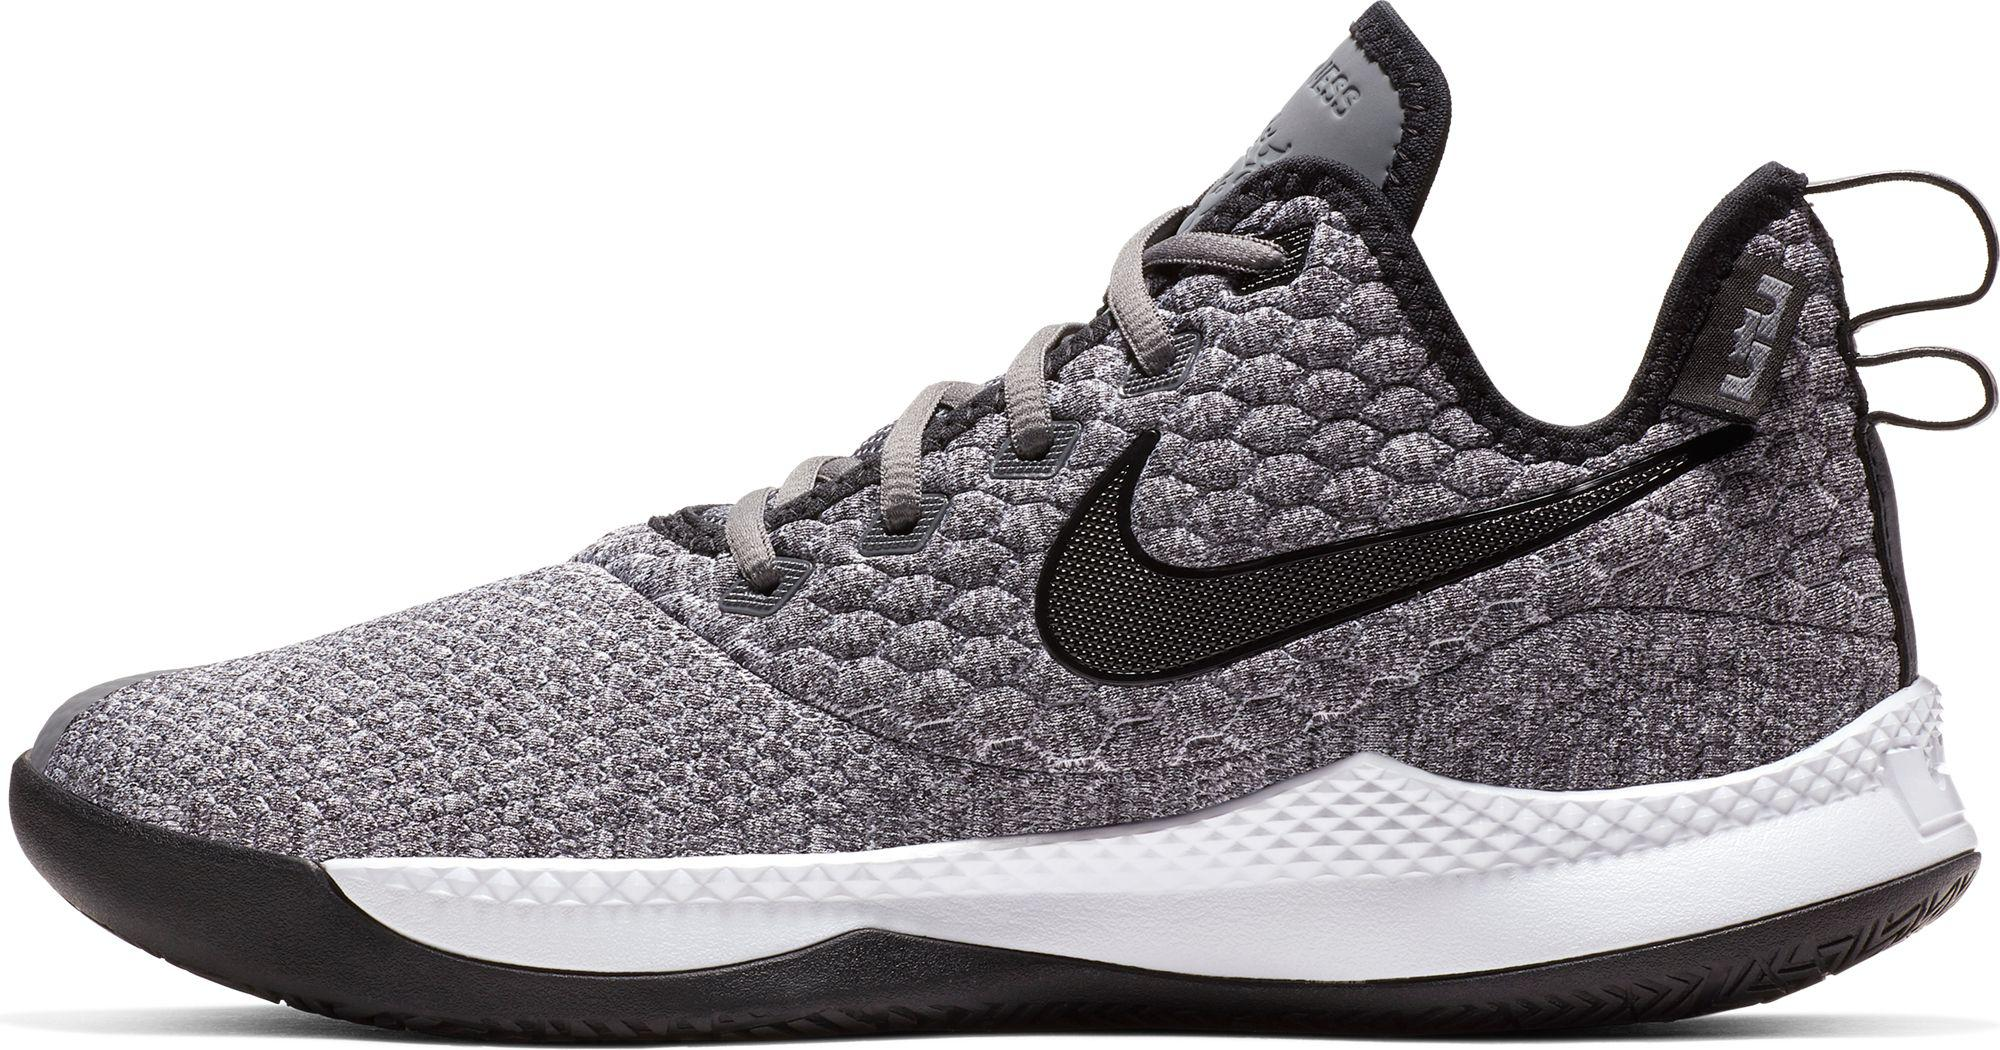 1b8a9fb8dcc Nike Lebron Witness Iii Basketball Shoes in Gray for Men - Lyst